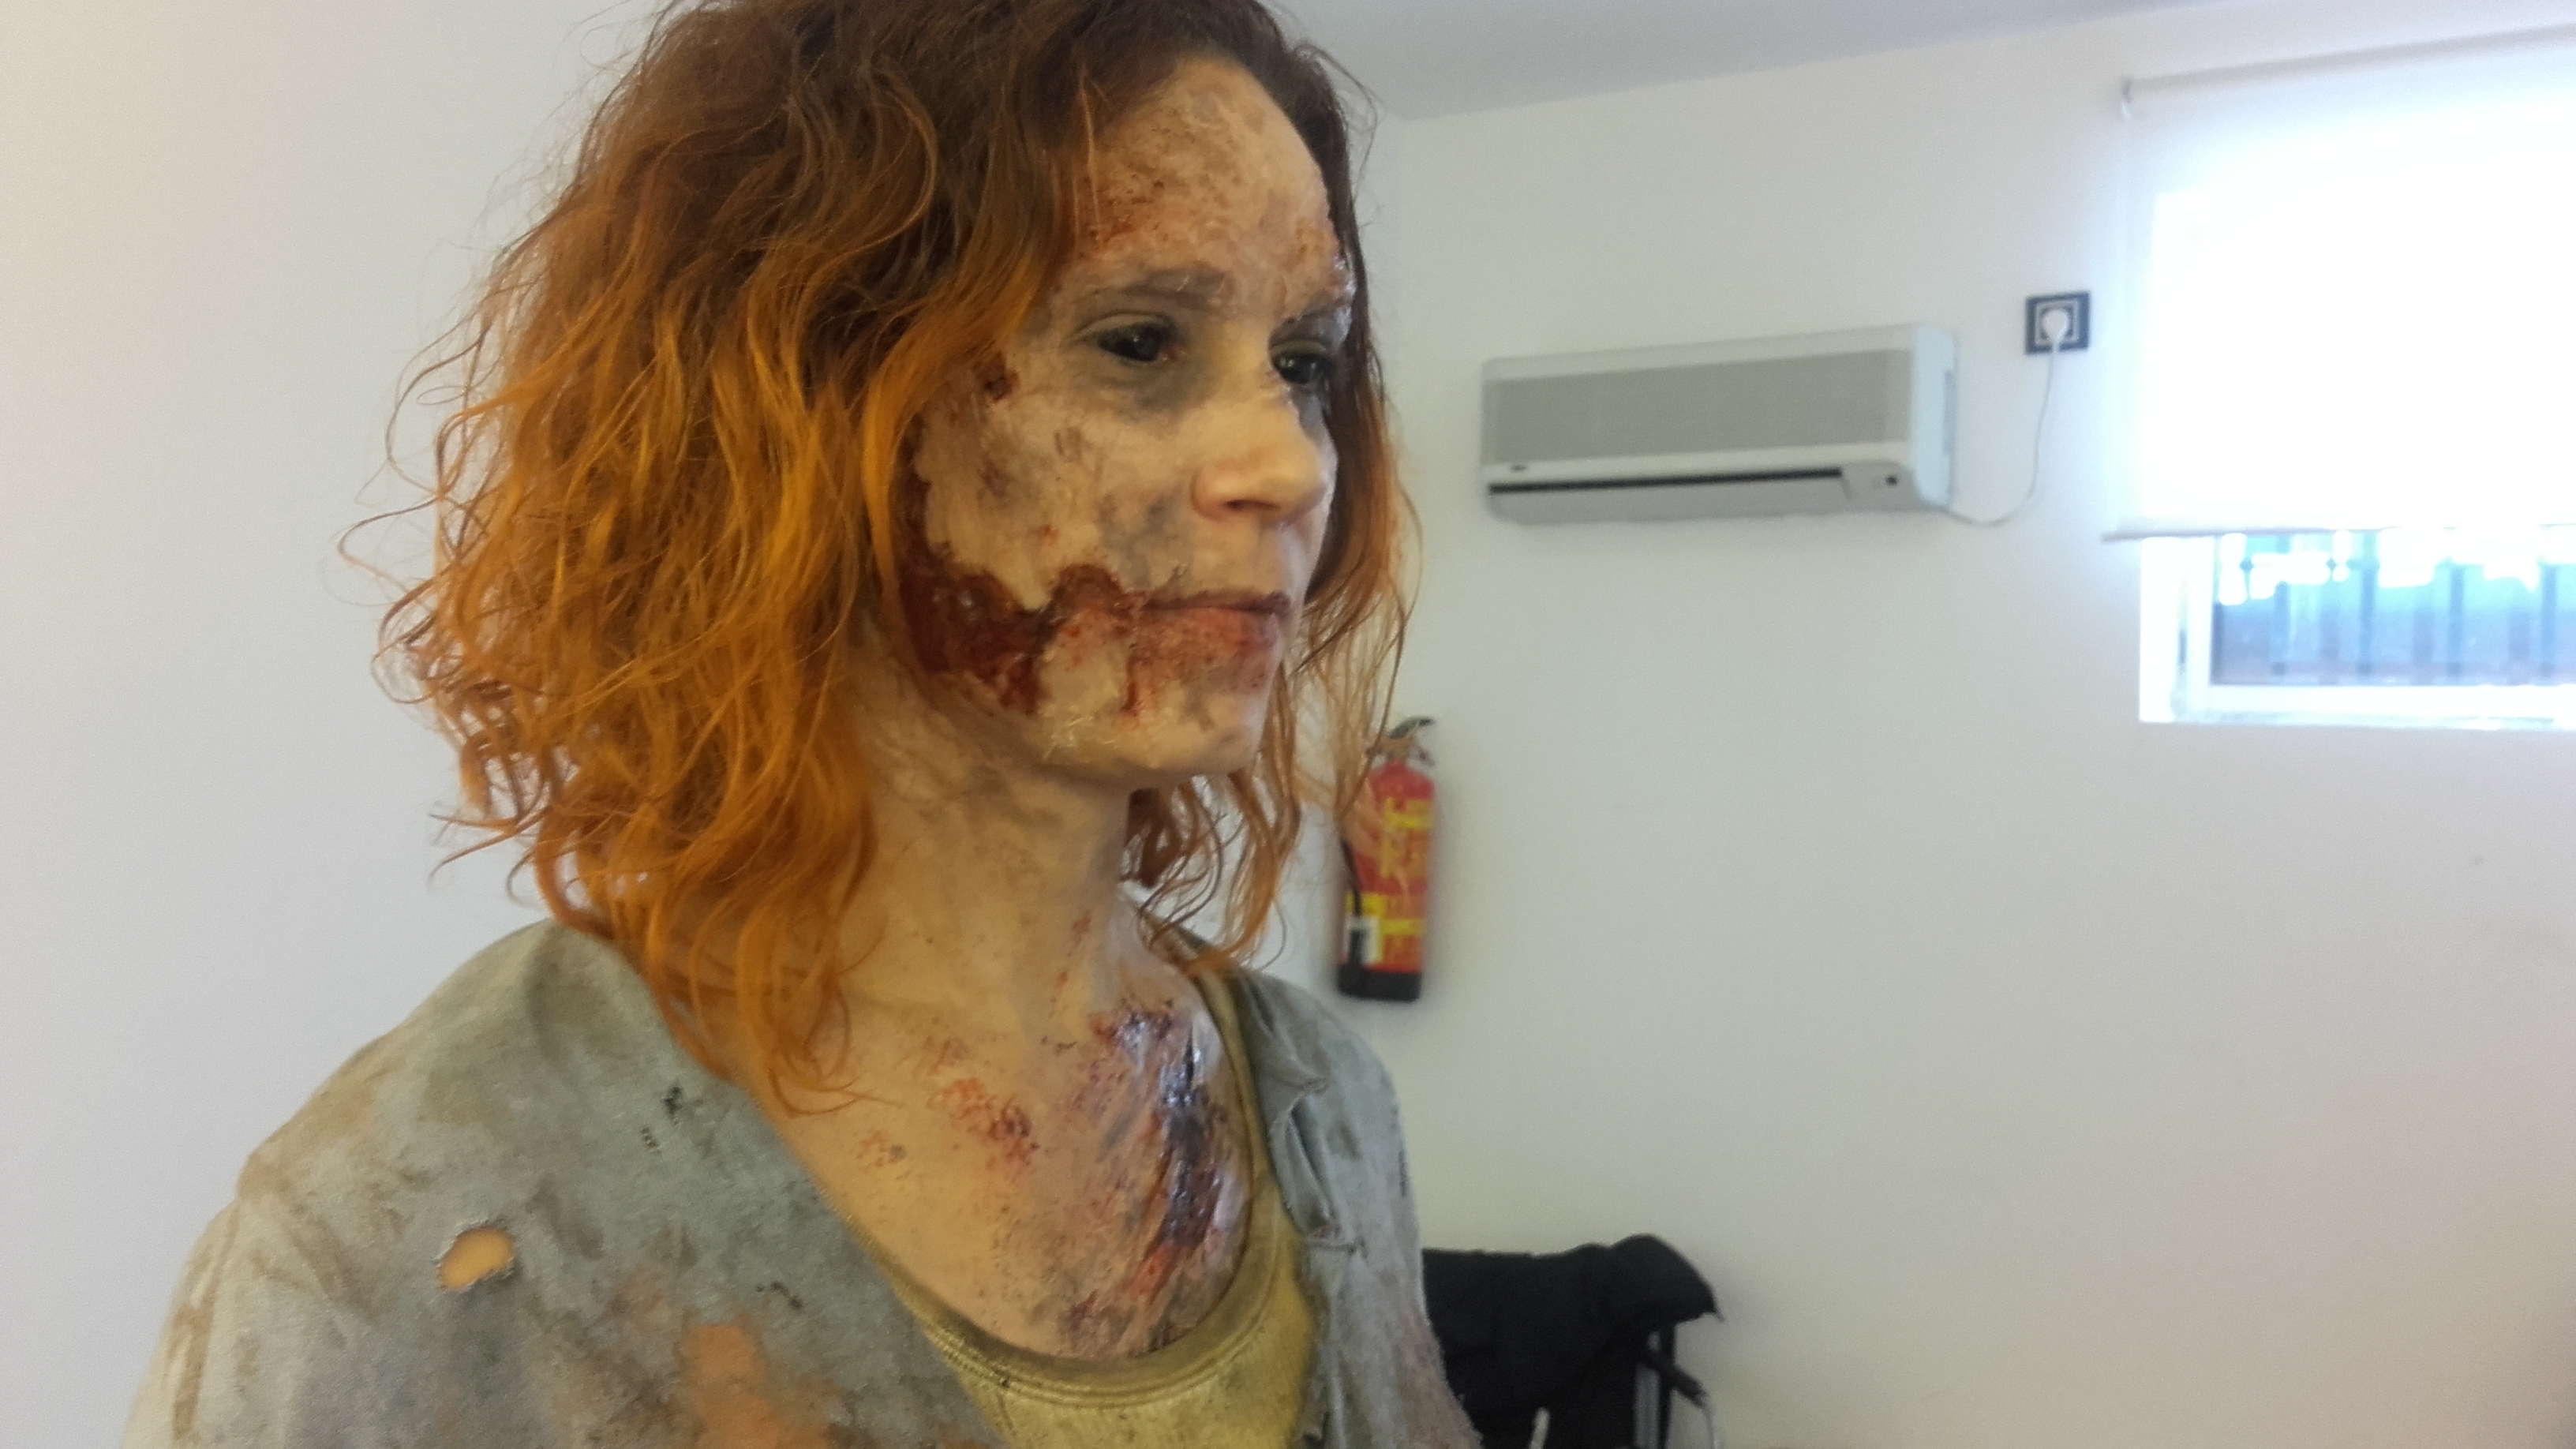 Zombies for Comcast